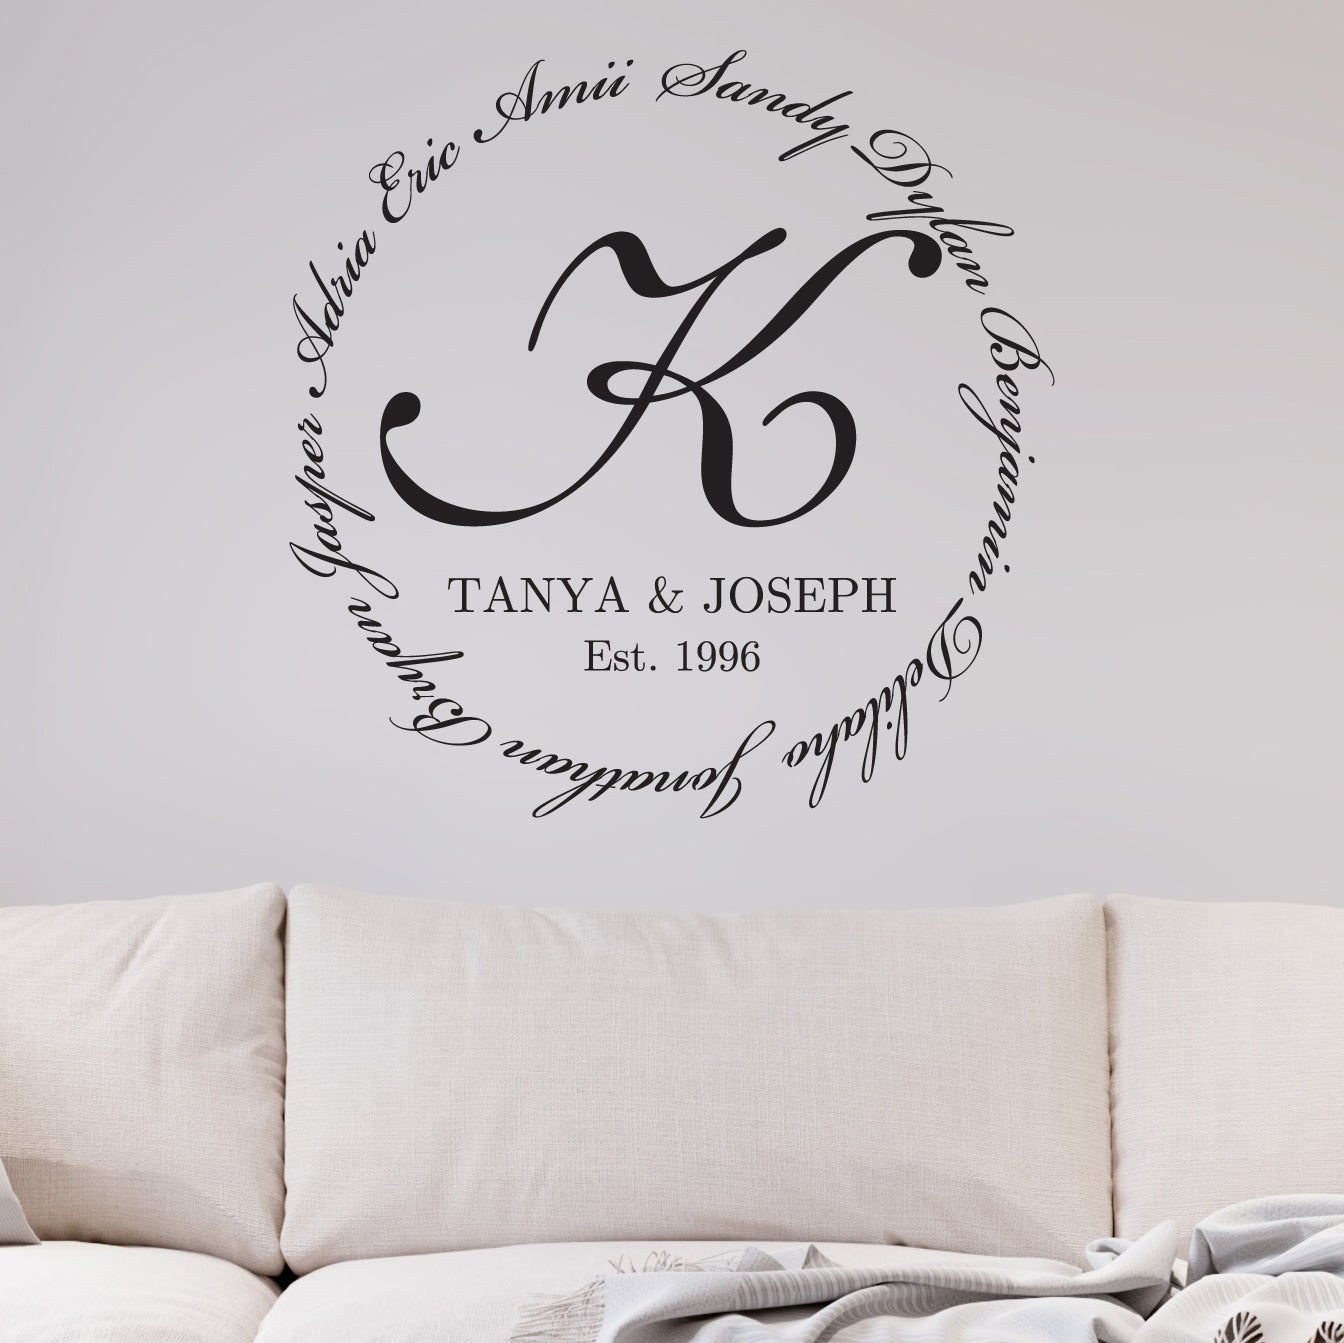 Family Encircling Love Monogram Wall Decal Modern Sticker Co - Advertize monogram wall decals